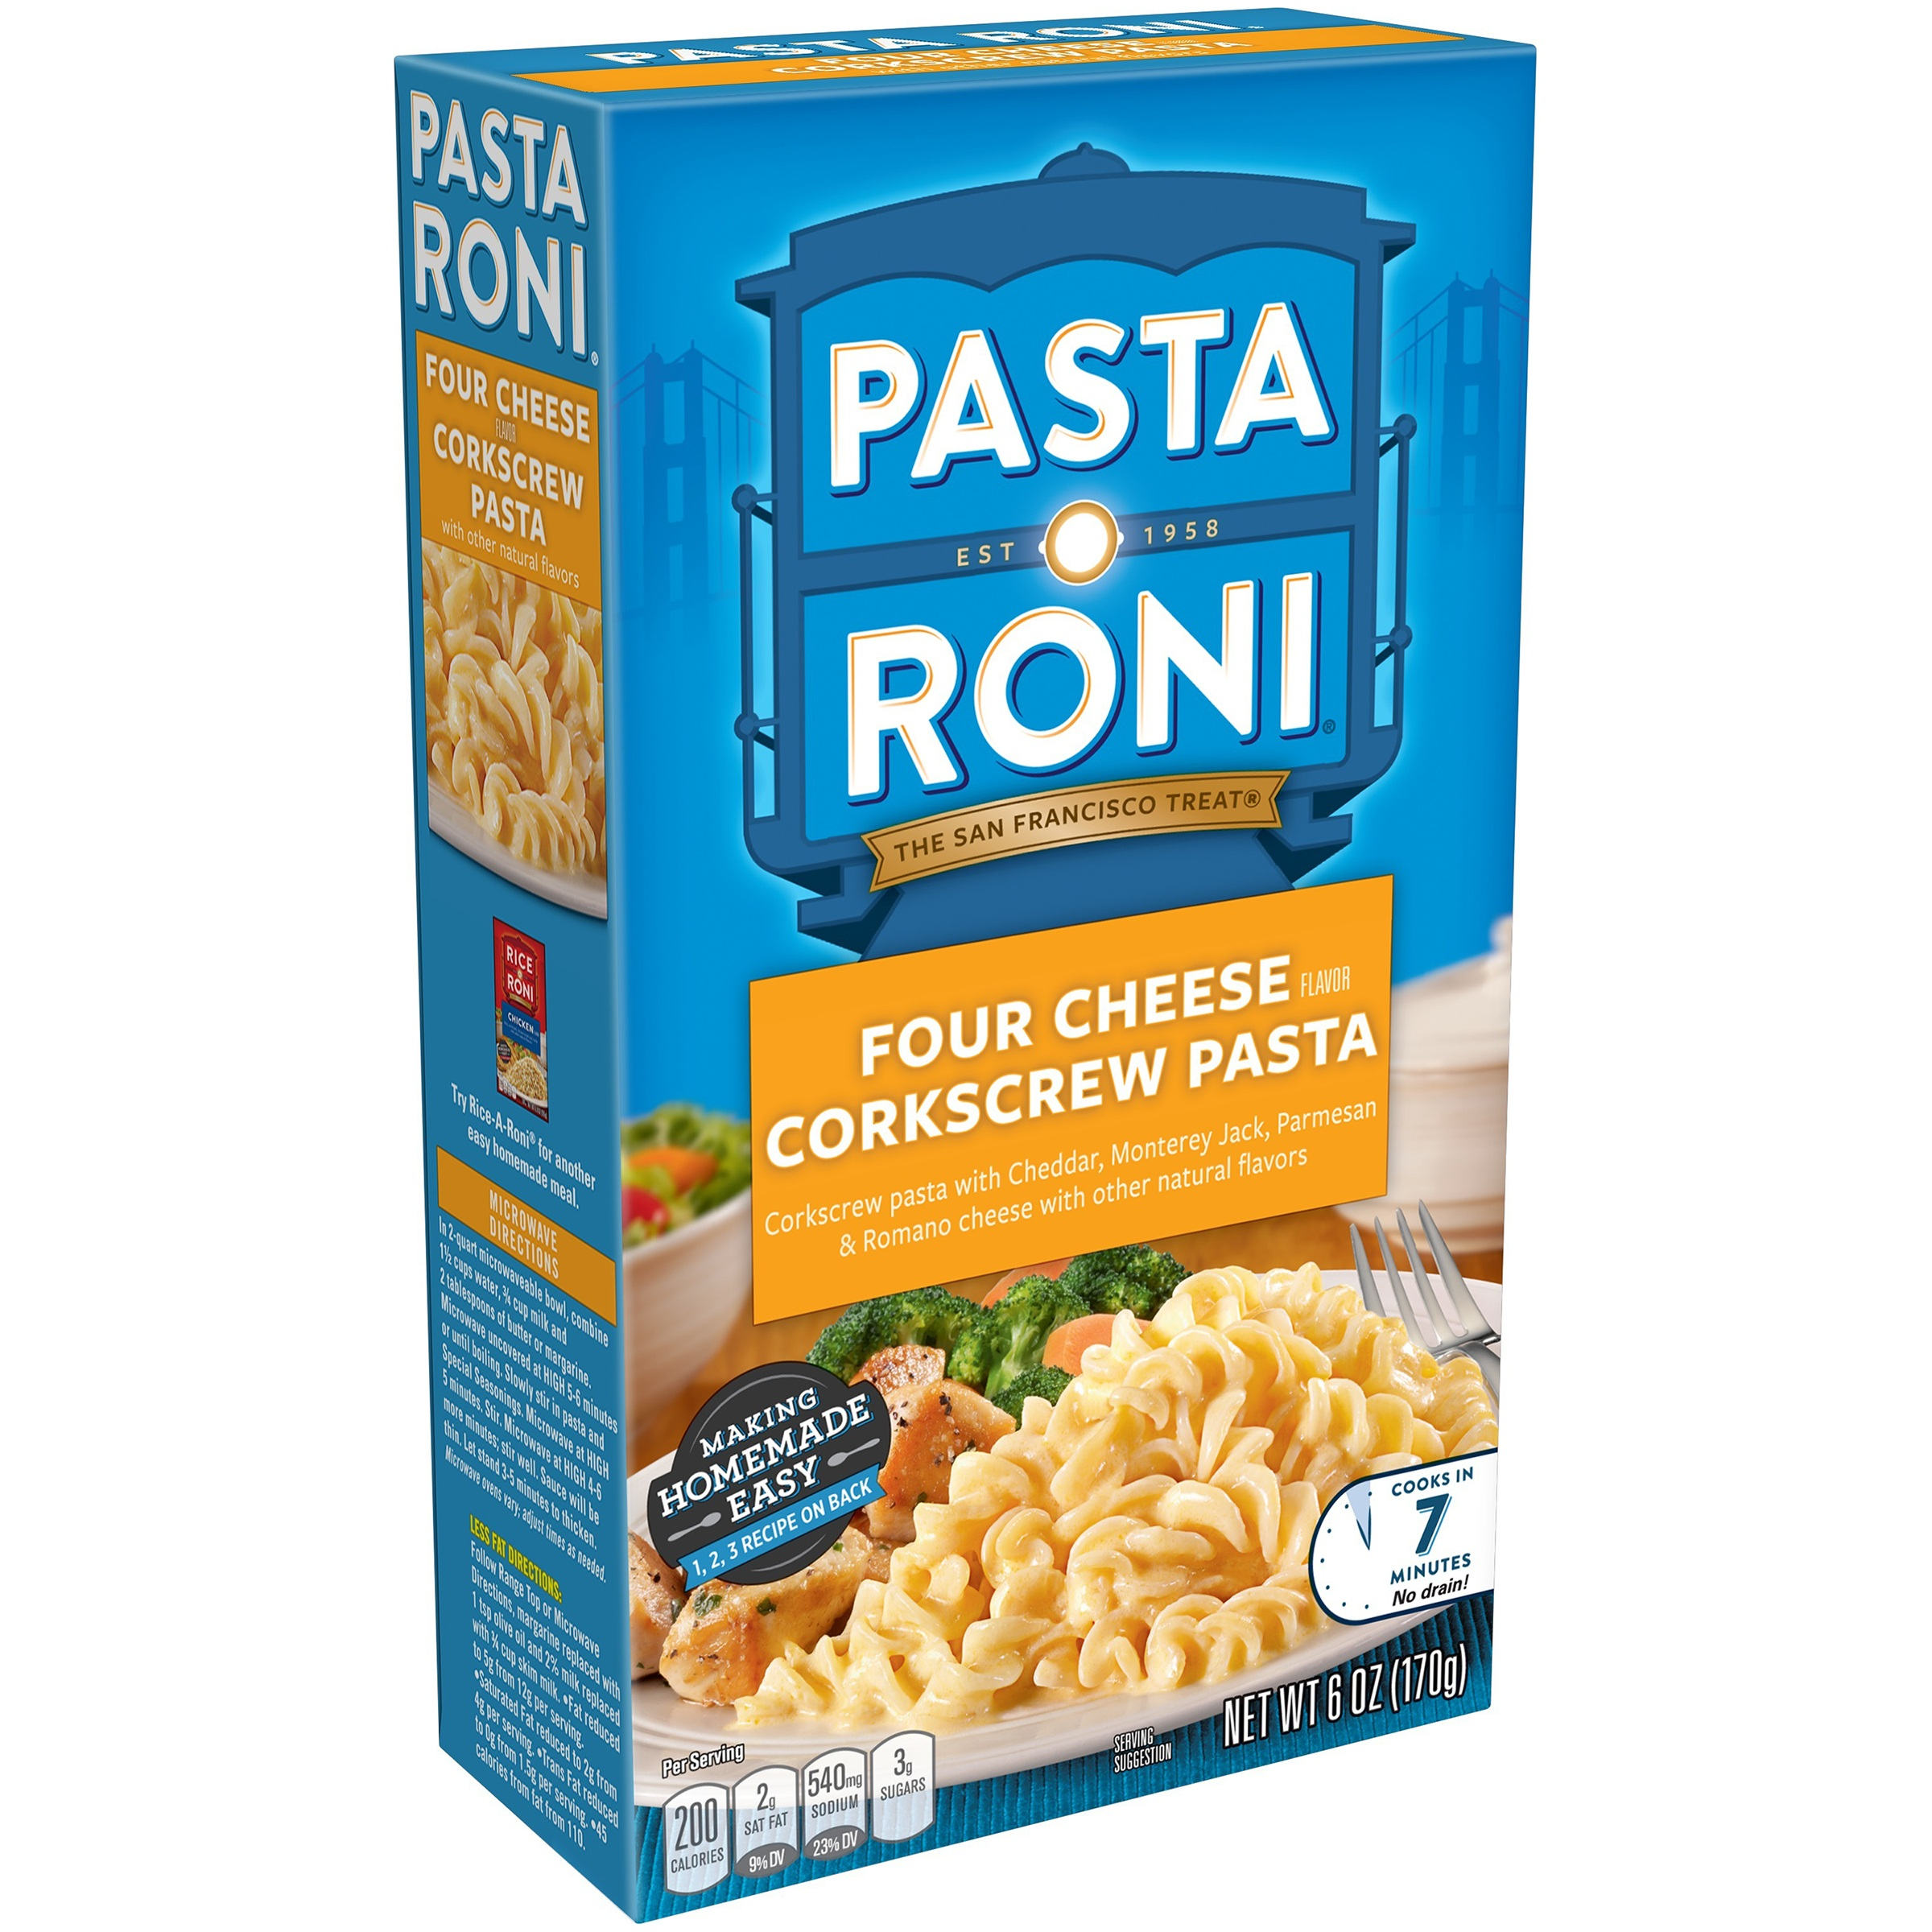 (12 Packs) Pasta Roni Four Cheese Corkscrew Pasta 6 oz - $0.17/oz